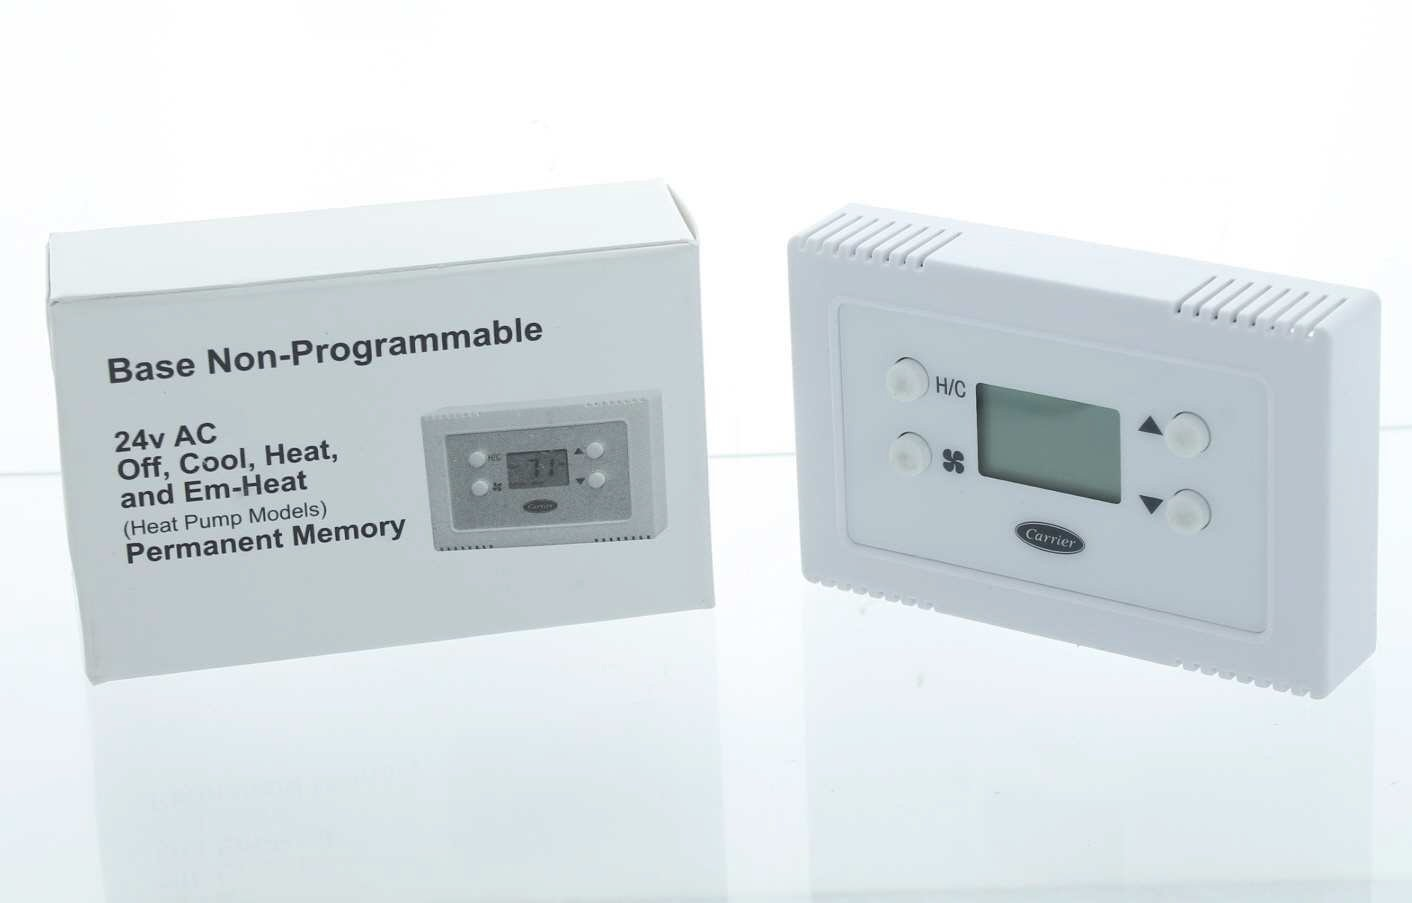 Carrier Base Series 24v AC Off, Cool, Heat, and Em-Heat (Heat Pump Models) Permanent Memory, Non-Programmable Thermostat TB-NAC01